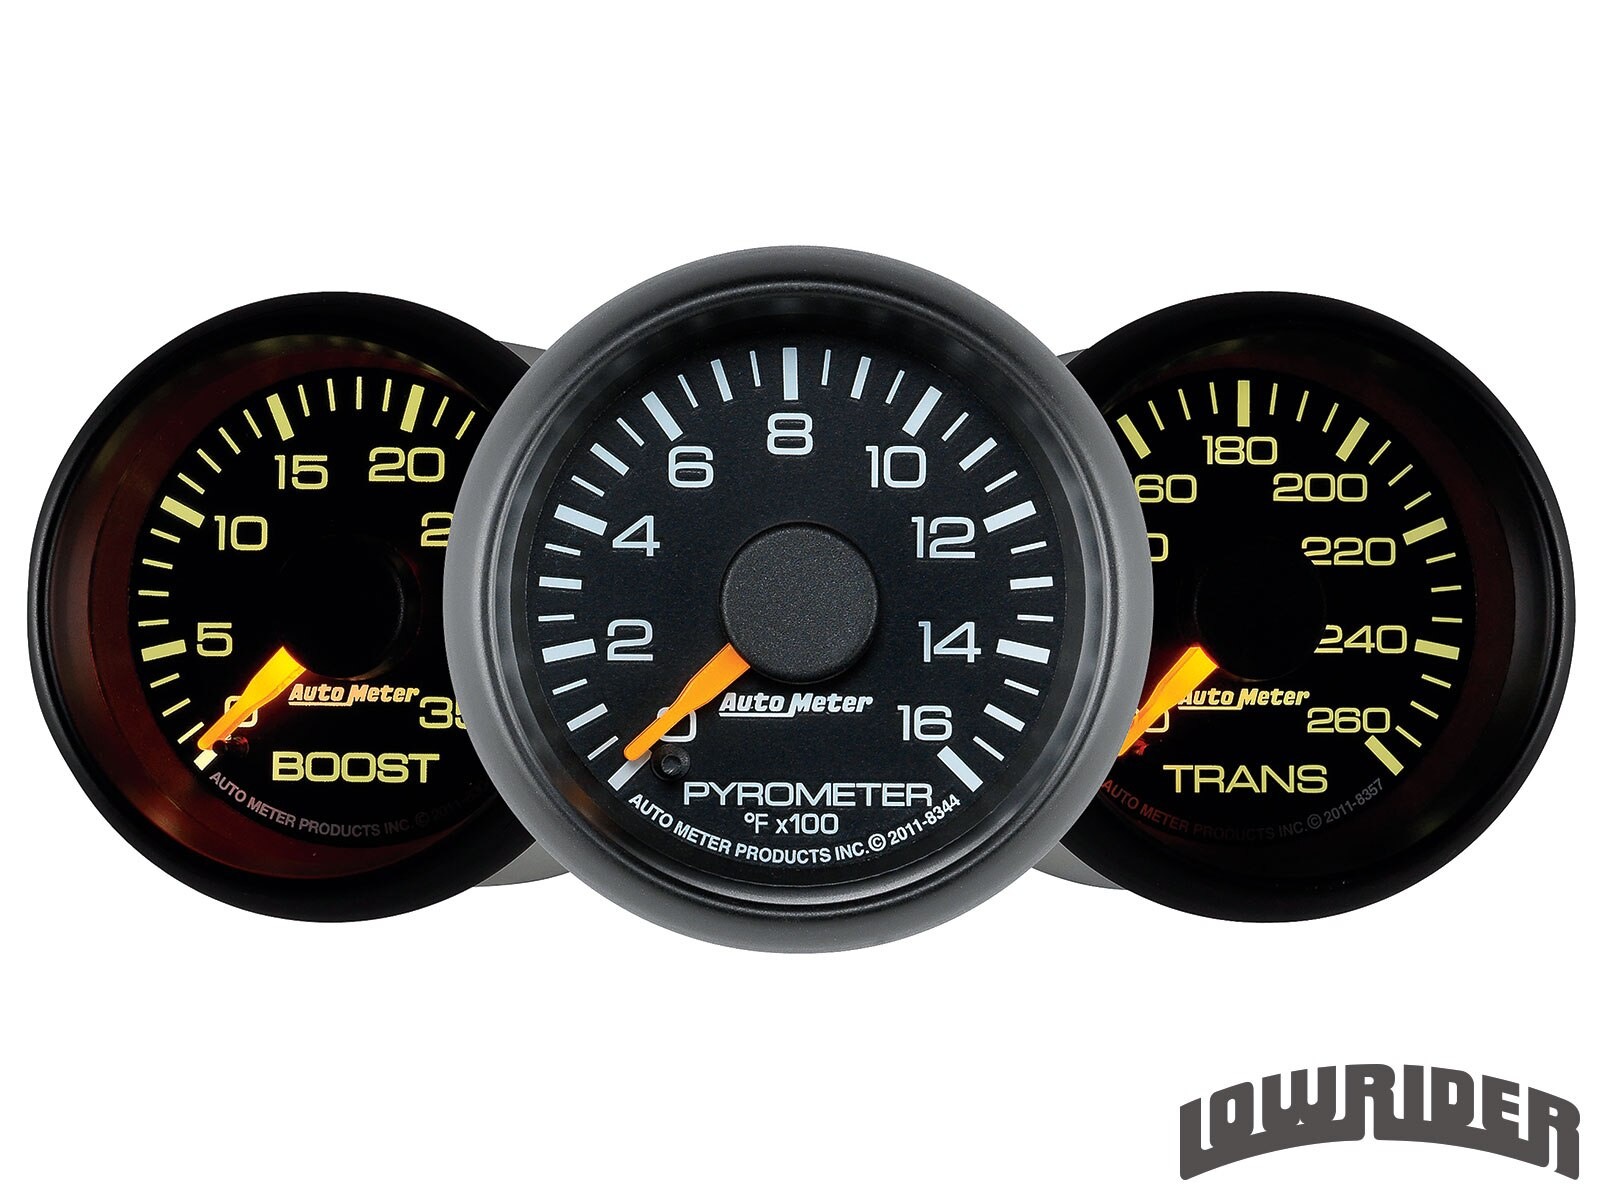 lowrider-new-products-august-2013-auto-meter-GM-factory-match-gauges1